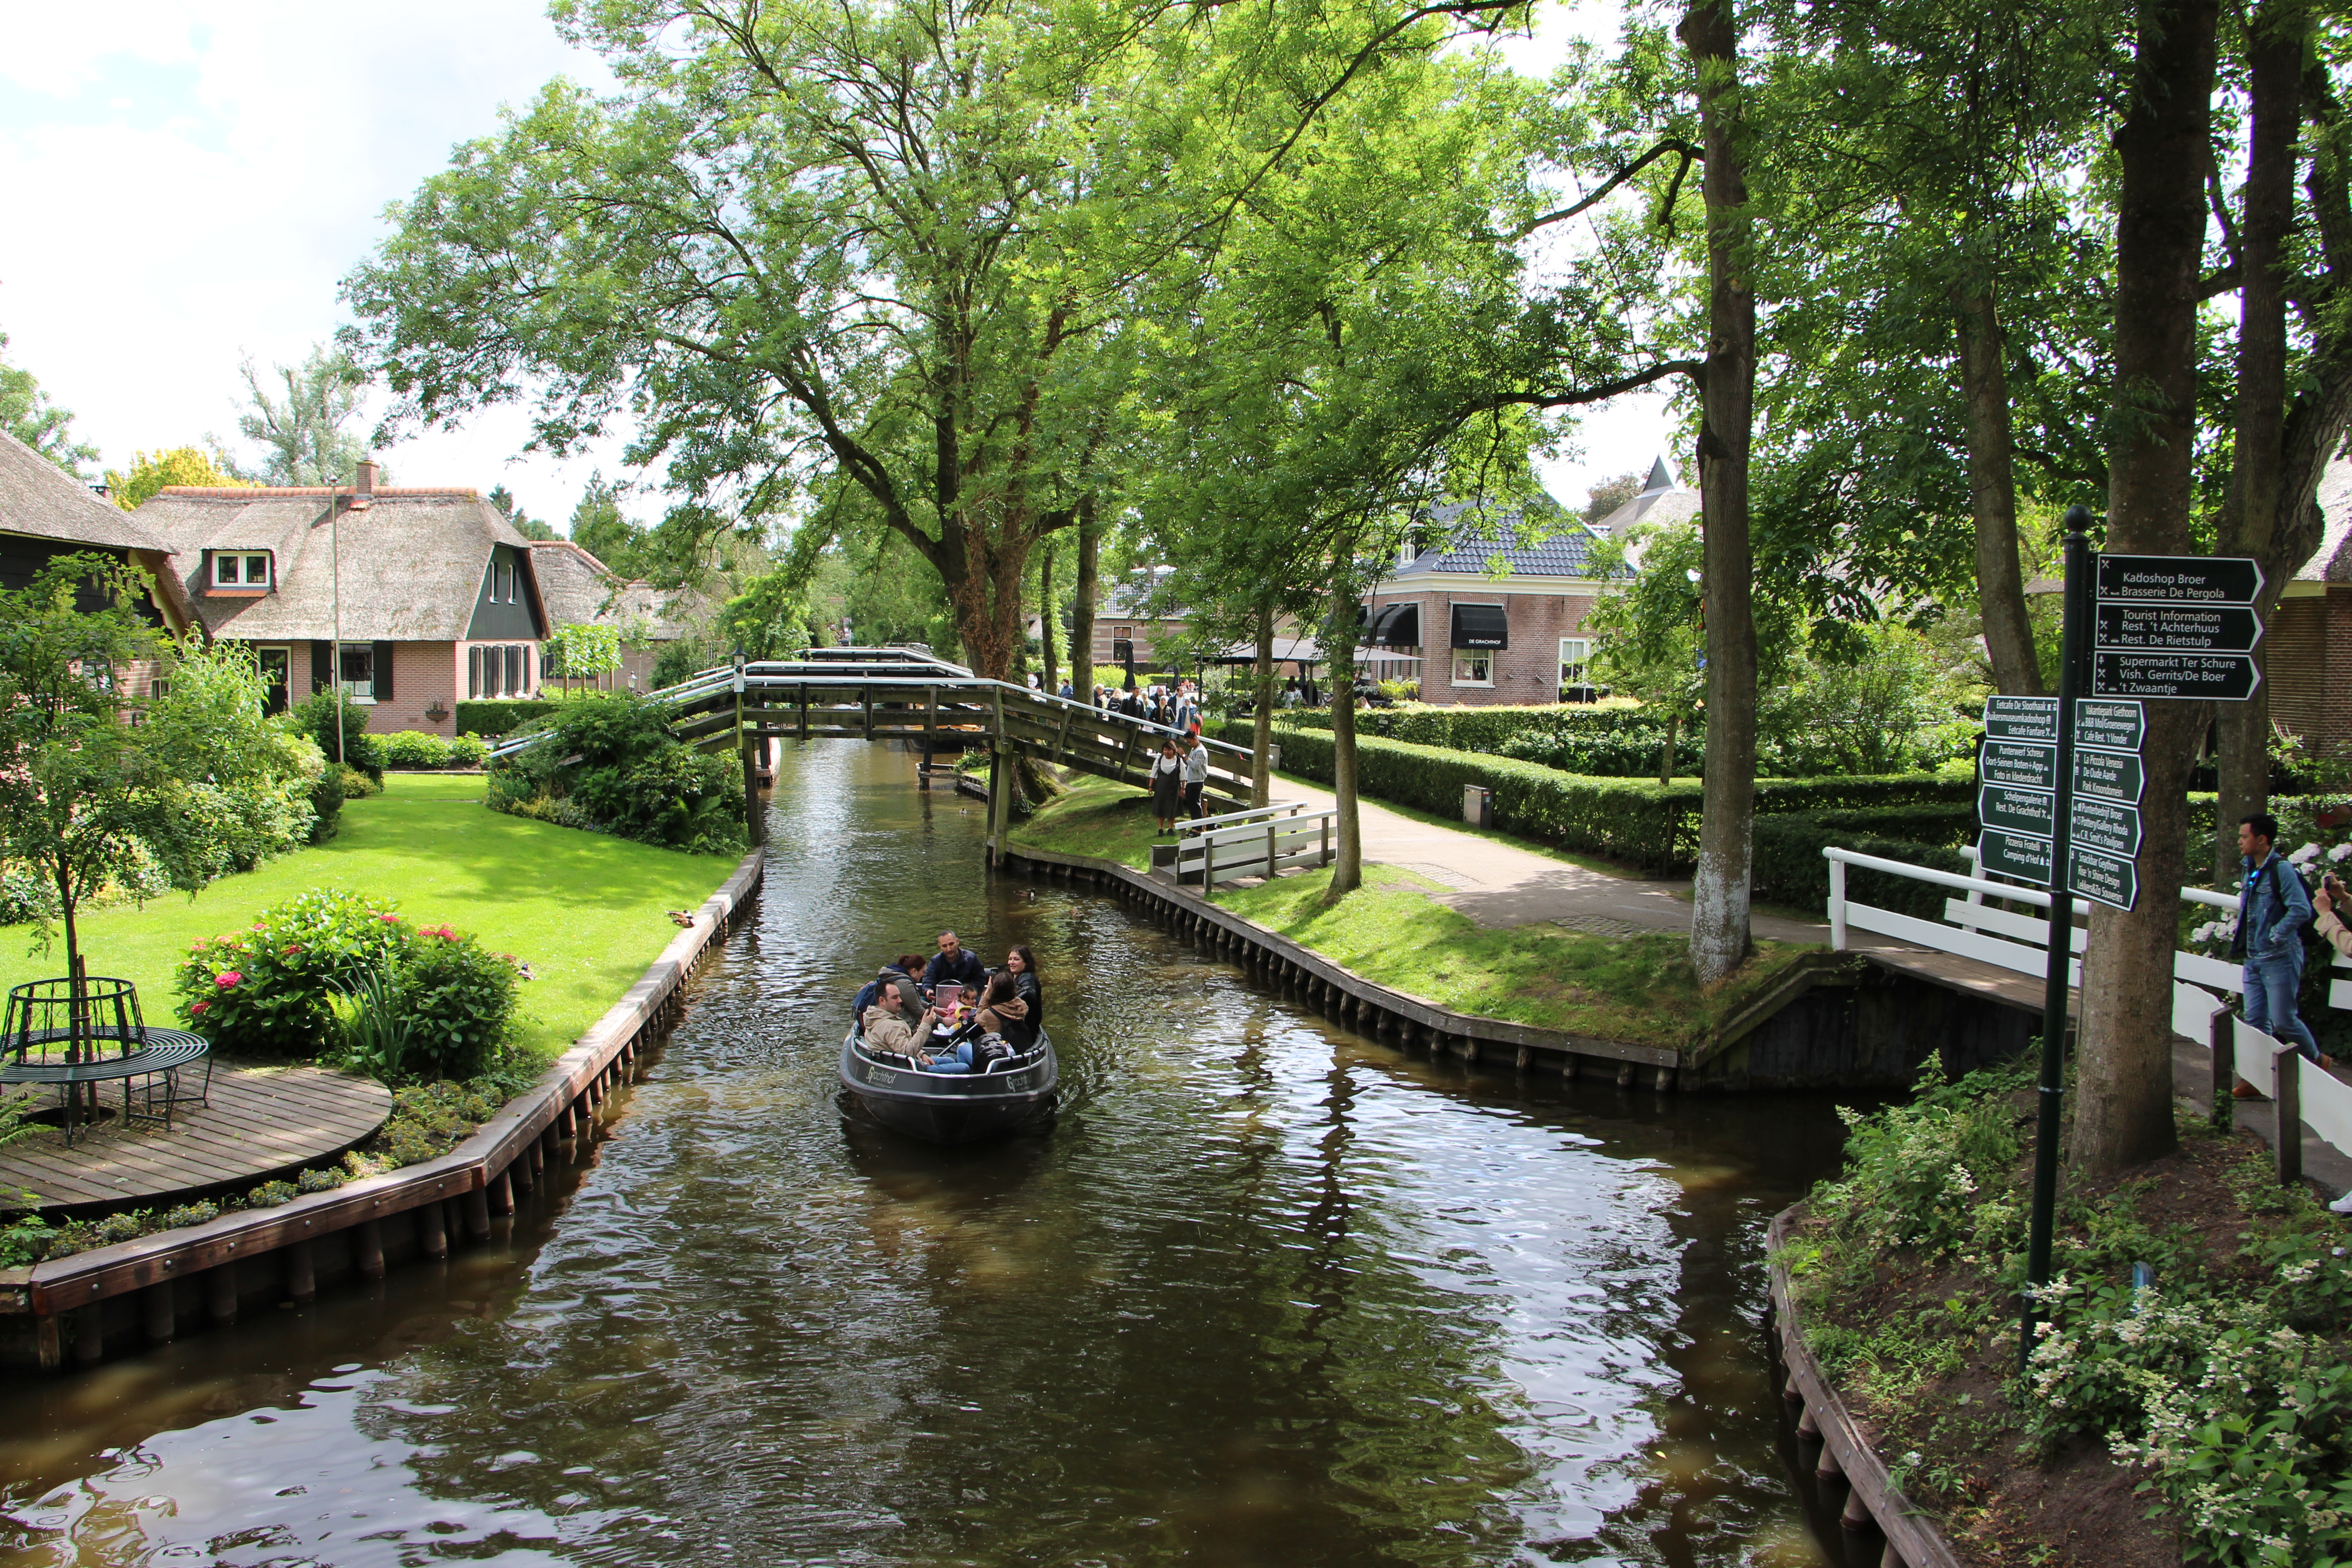 Giethoorn is known for its boat-filled waterways, footpaths, bicycle trails and centuries-old thatched-roof houses.